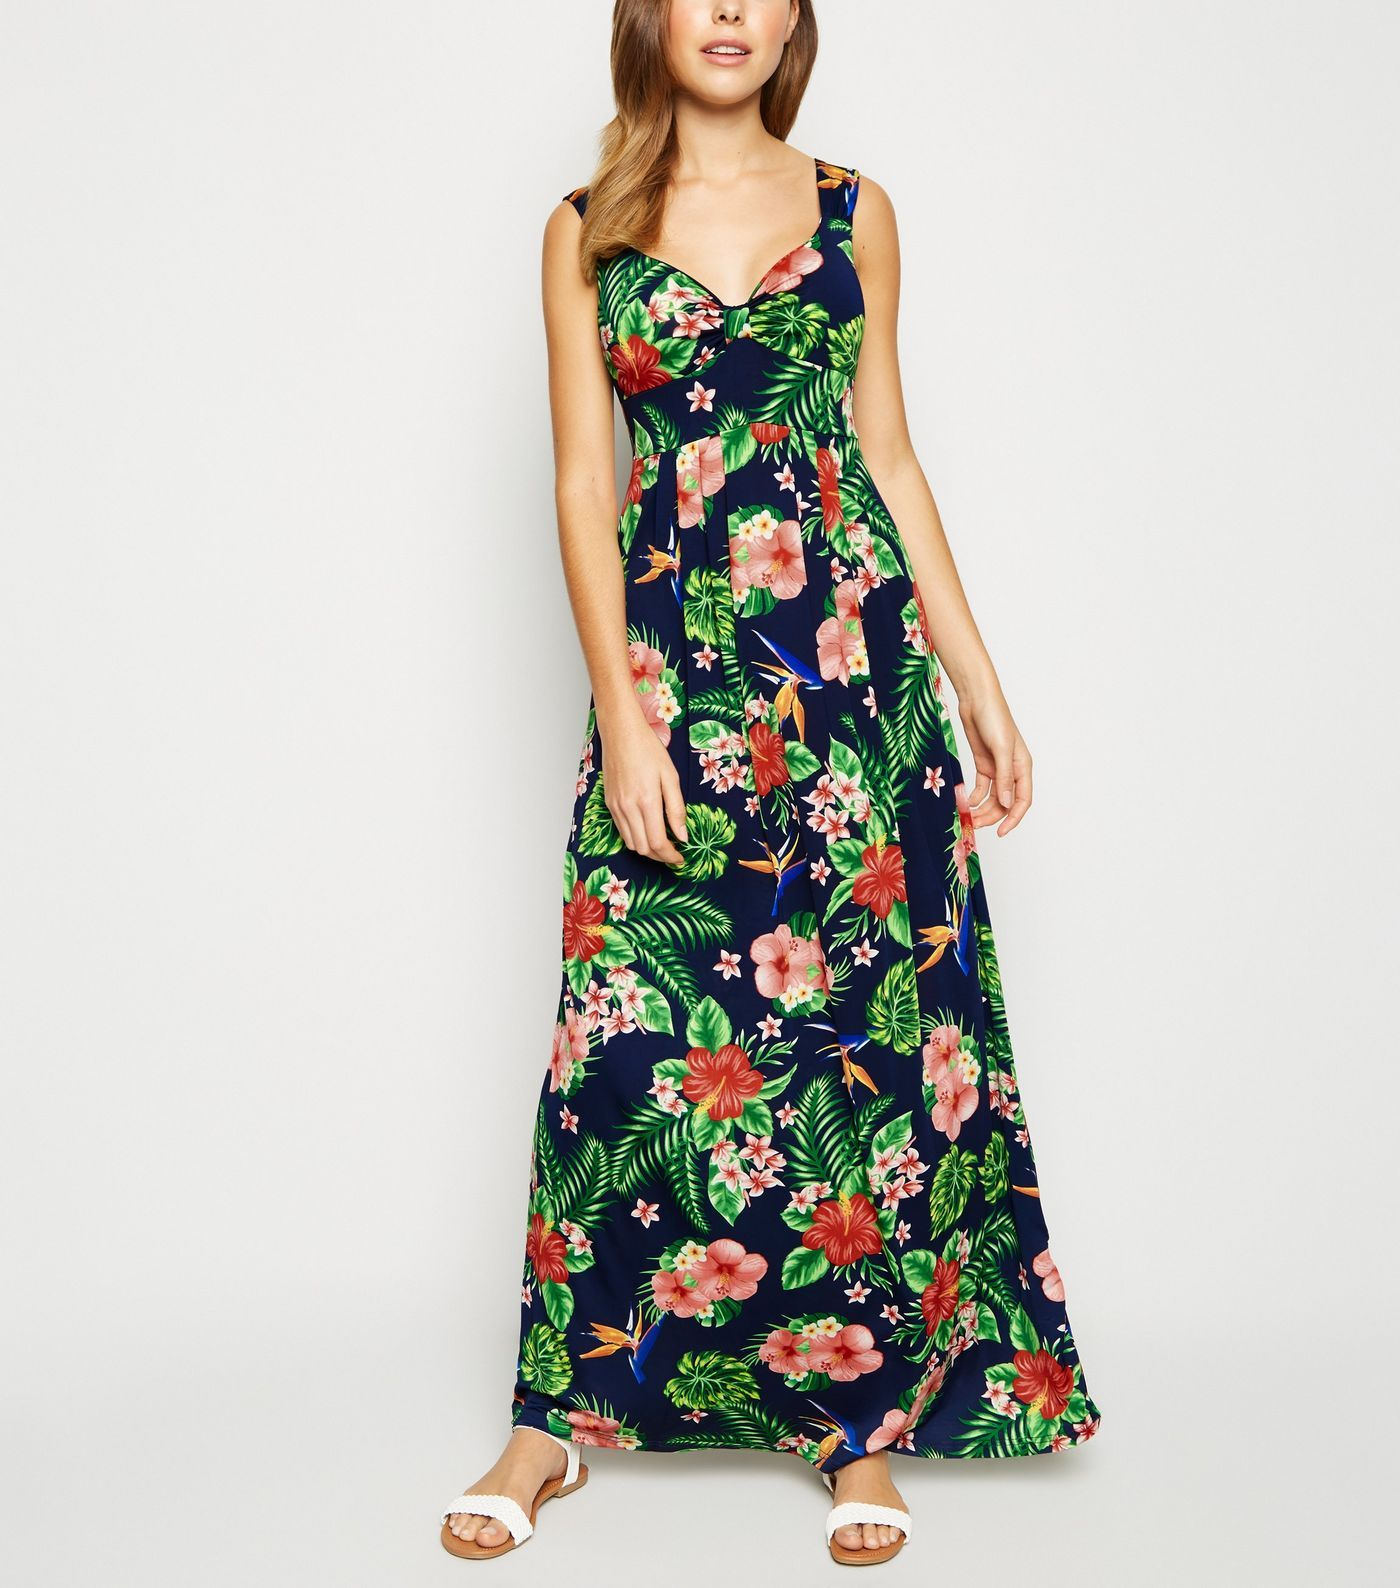 41c176d112 Mela Navy Tropical Floral Maxi Dress in 2019 | what to wear ...